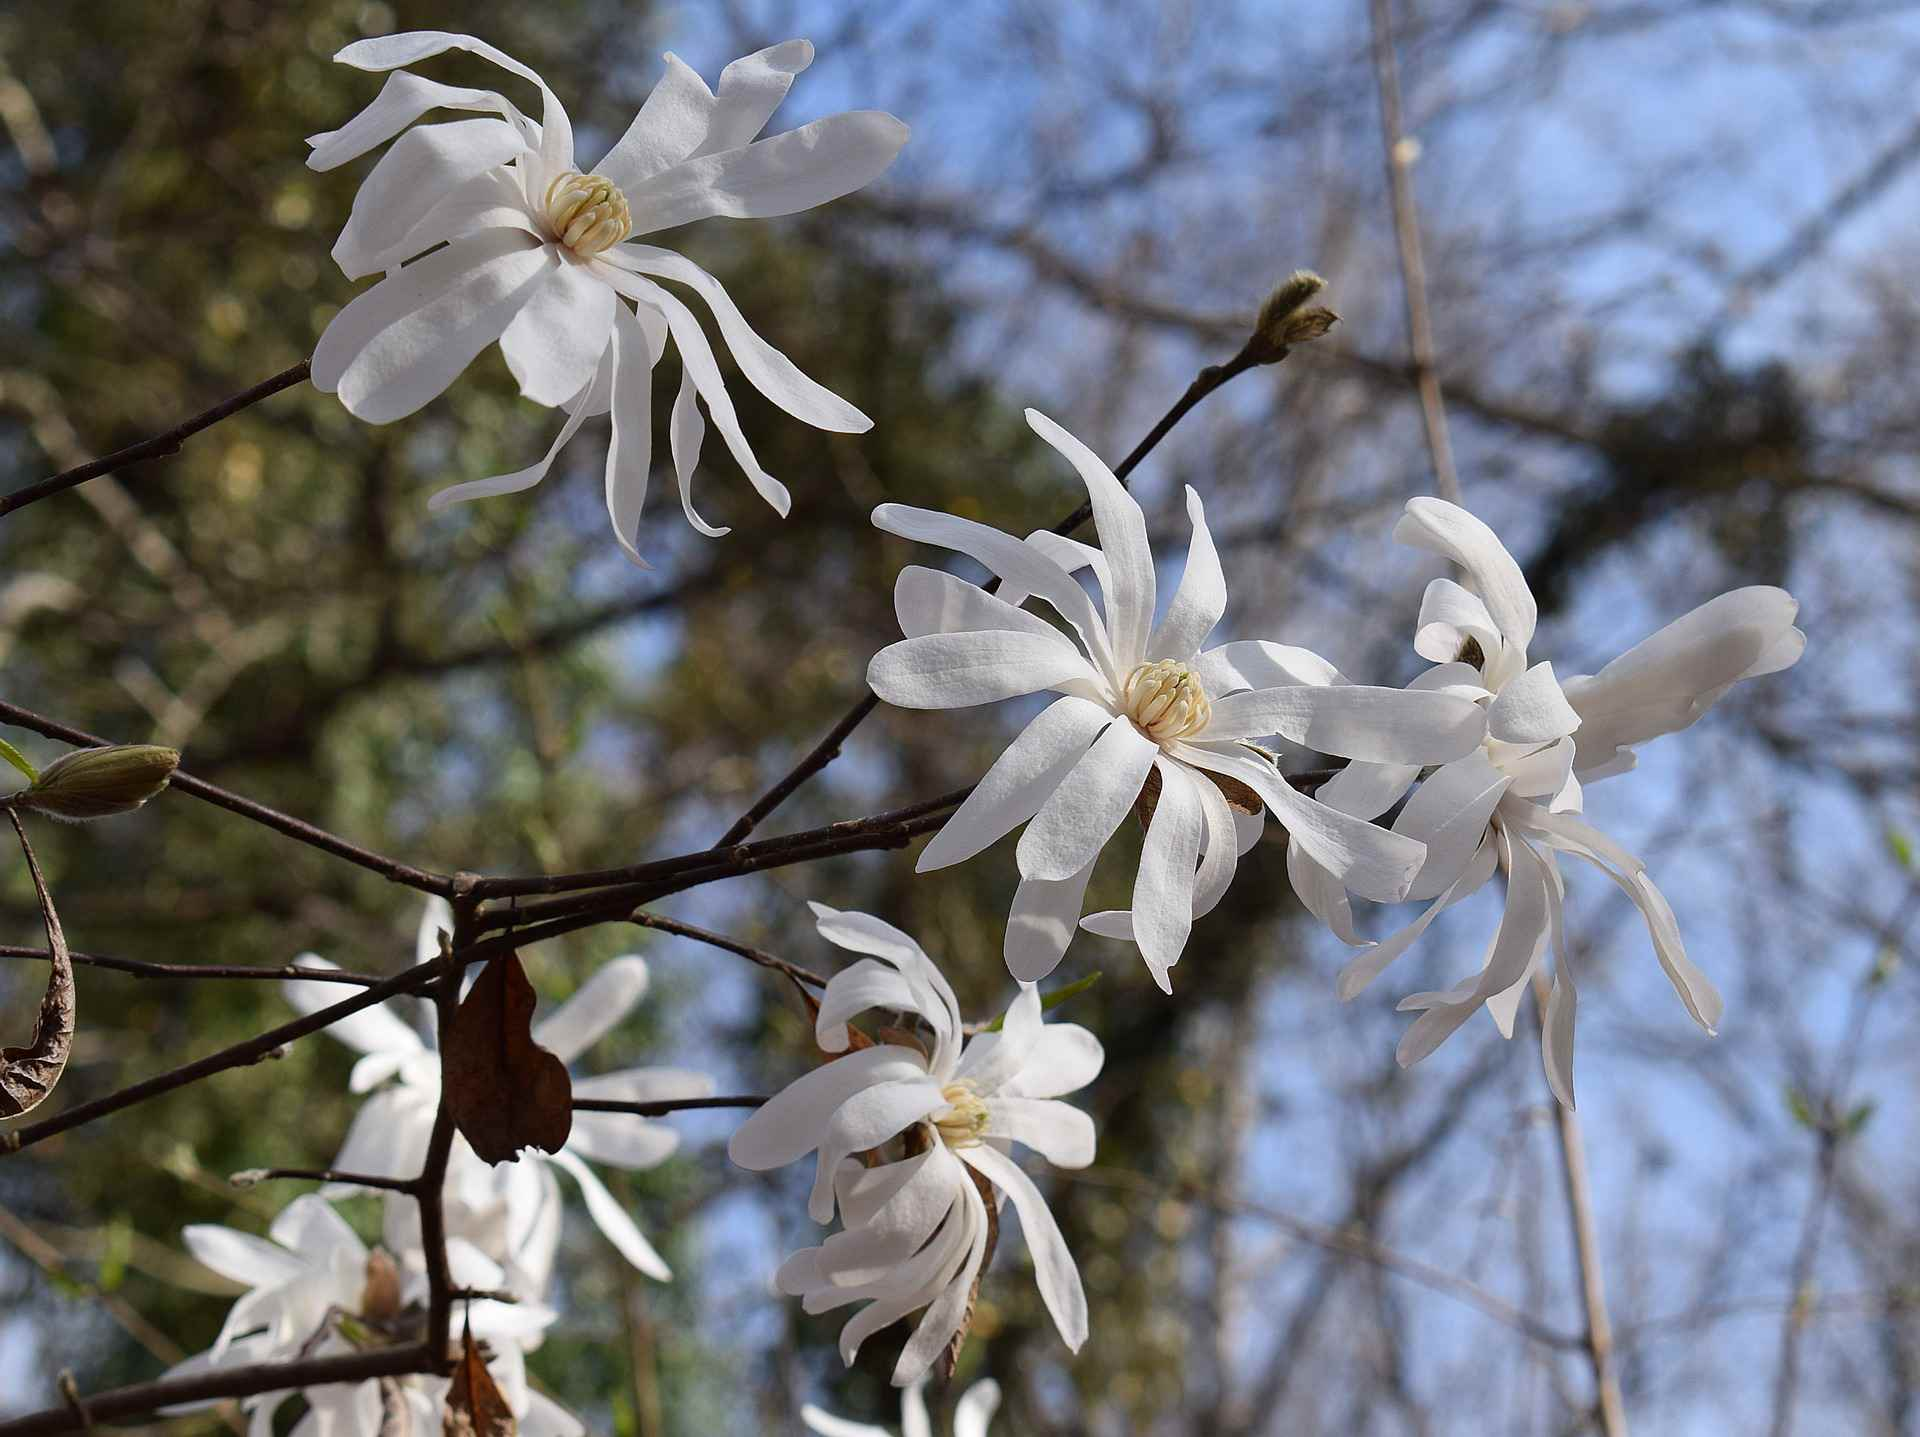 Star Magnolia Trees